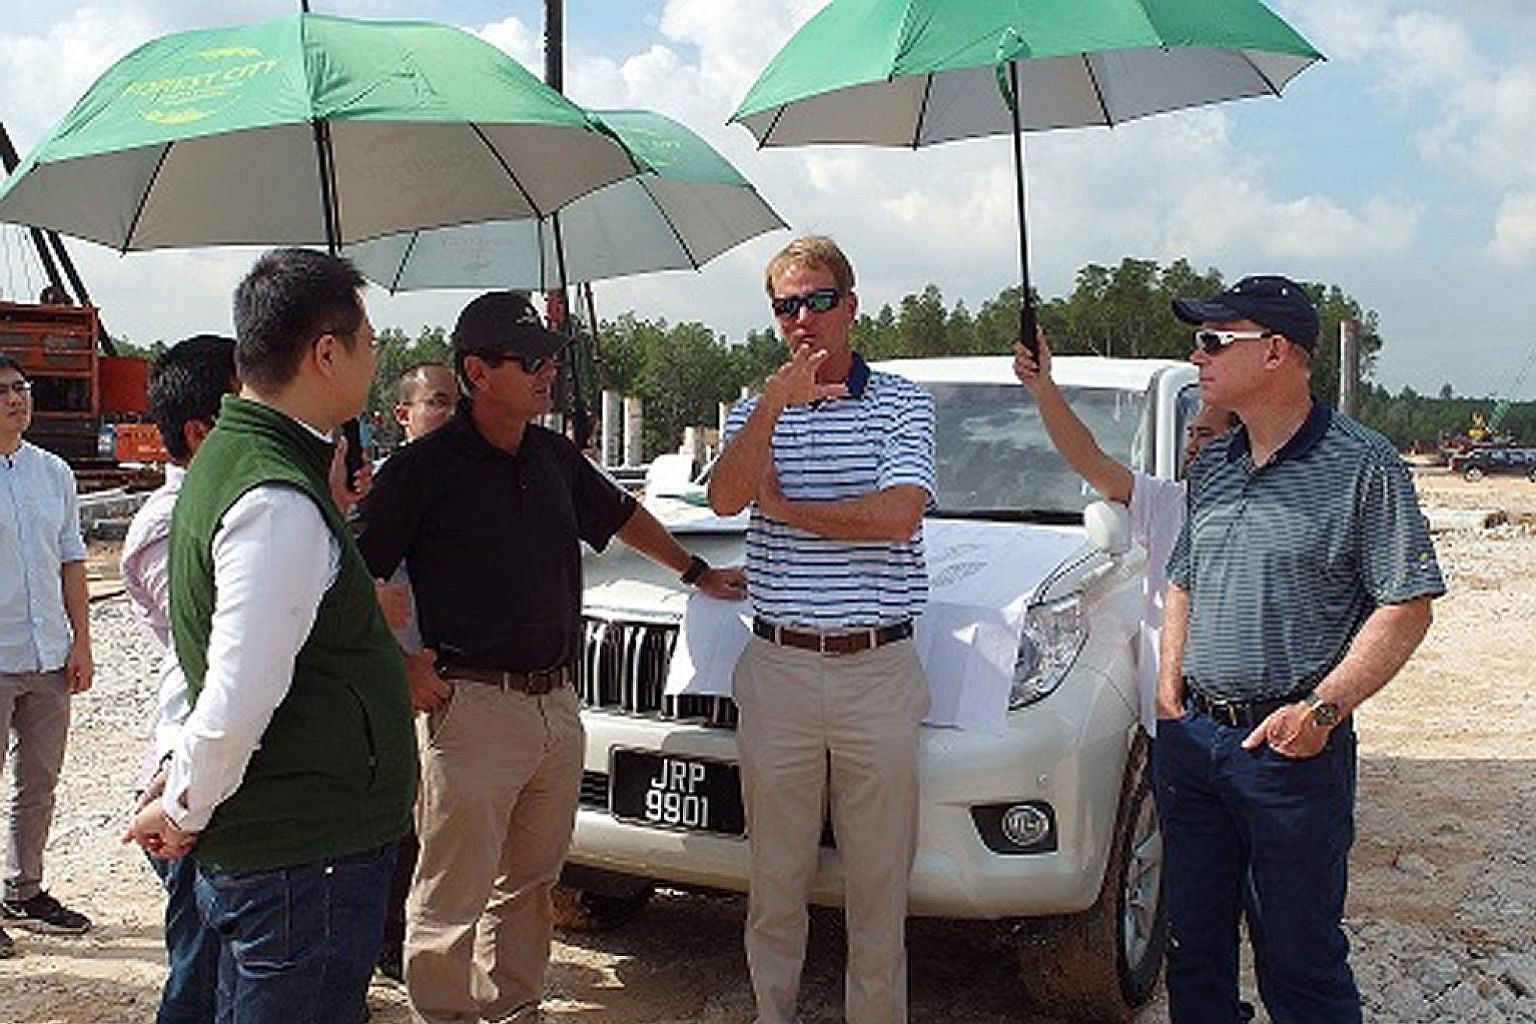 Mr Jack Nicklaus II (centre) surveying the area at Forest City.